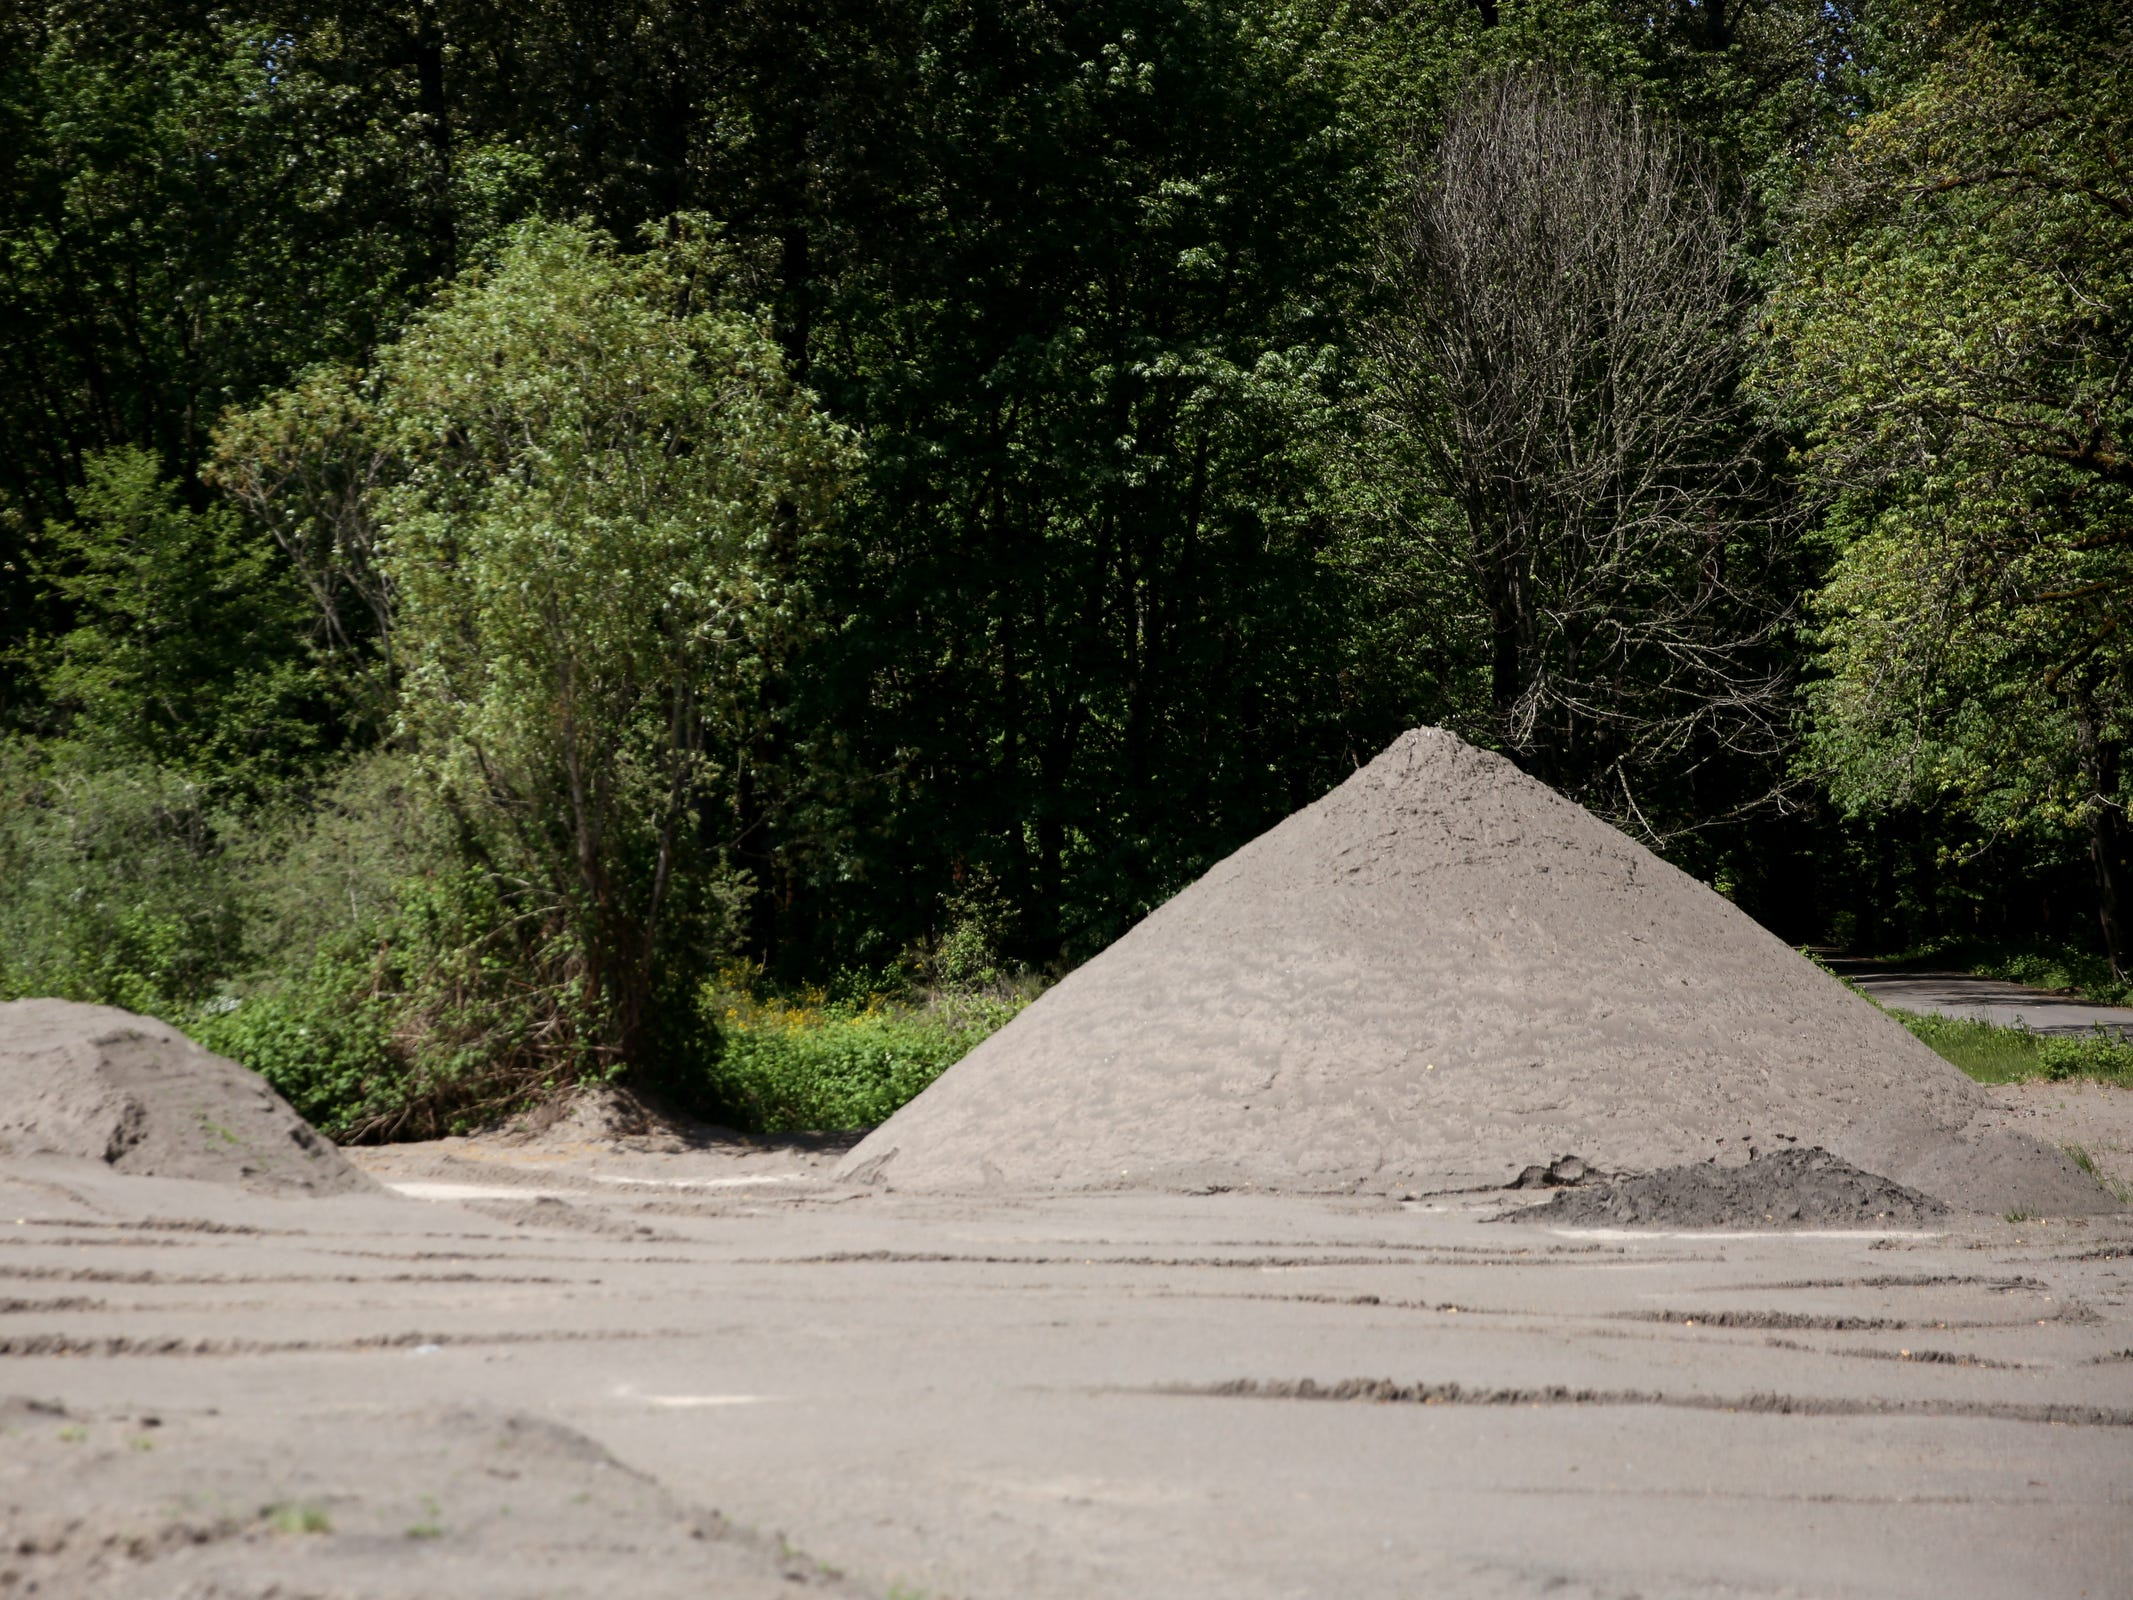 Sand is used to help as a natural filtration system at the Geren Island Water Treatment Facility near Stayton on May 10, 2019. Salem officials are planning to spend more than $75 million to build defenses against toxic algae, in an effort to avoid a rerun of last year's drinking water crisis.